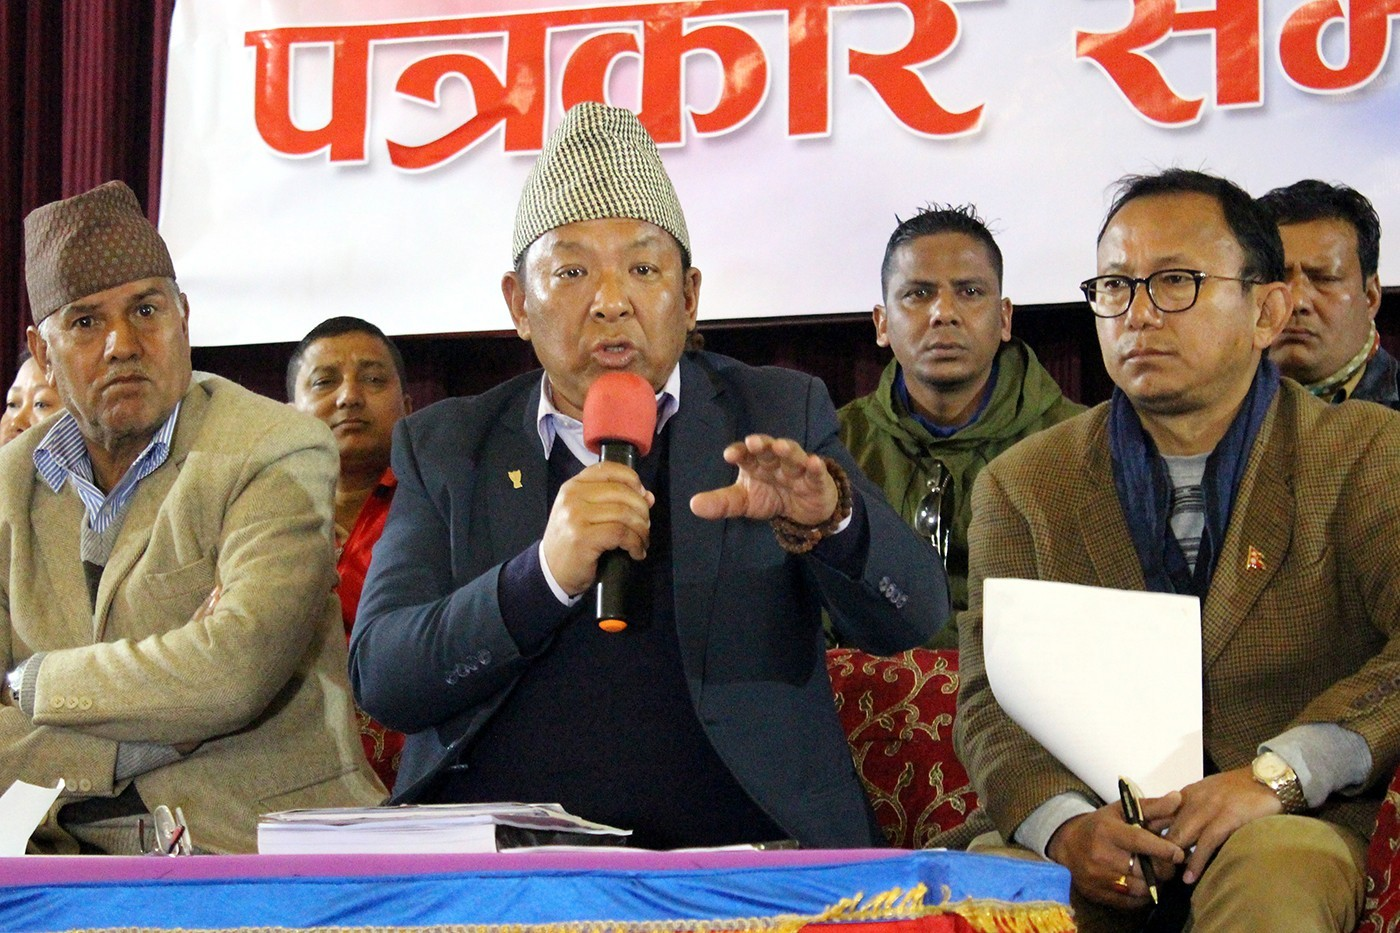 ANFA Prez Karma Tsering Sherpa : Where Are KELME Gears Worth 40 Lakh ?